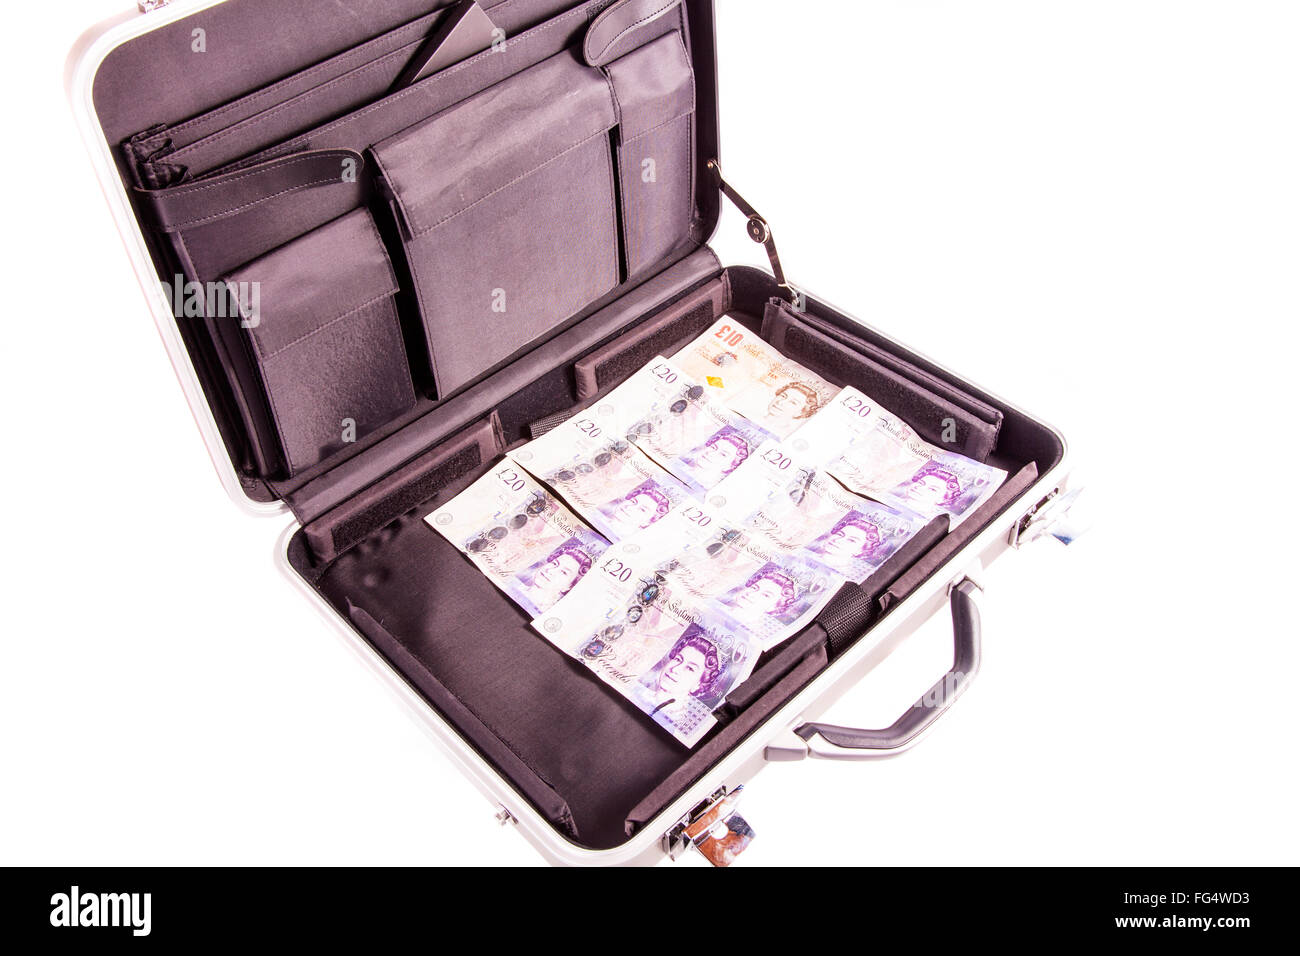 Case full of money cash for deal briefcase exchange dodgy deals ransom dealing cutout cut out white background isolated - Stock Image